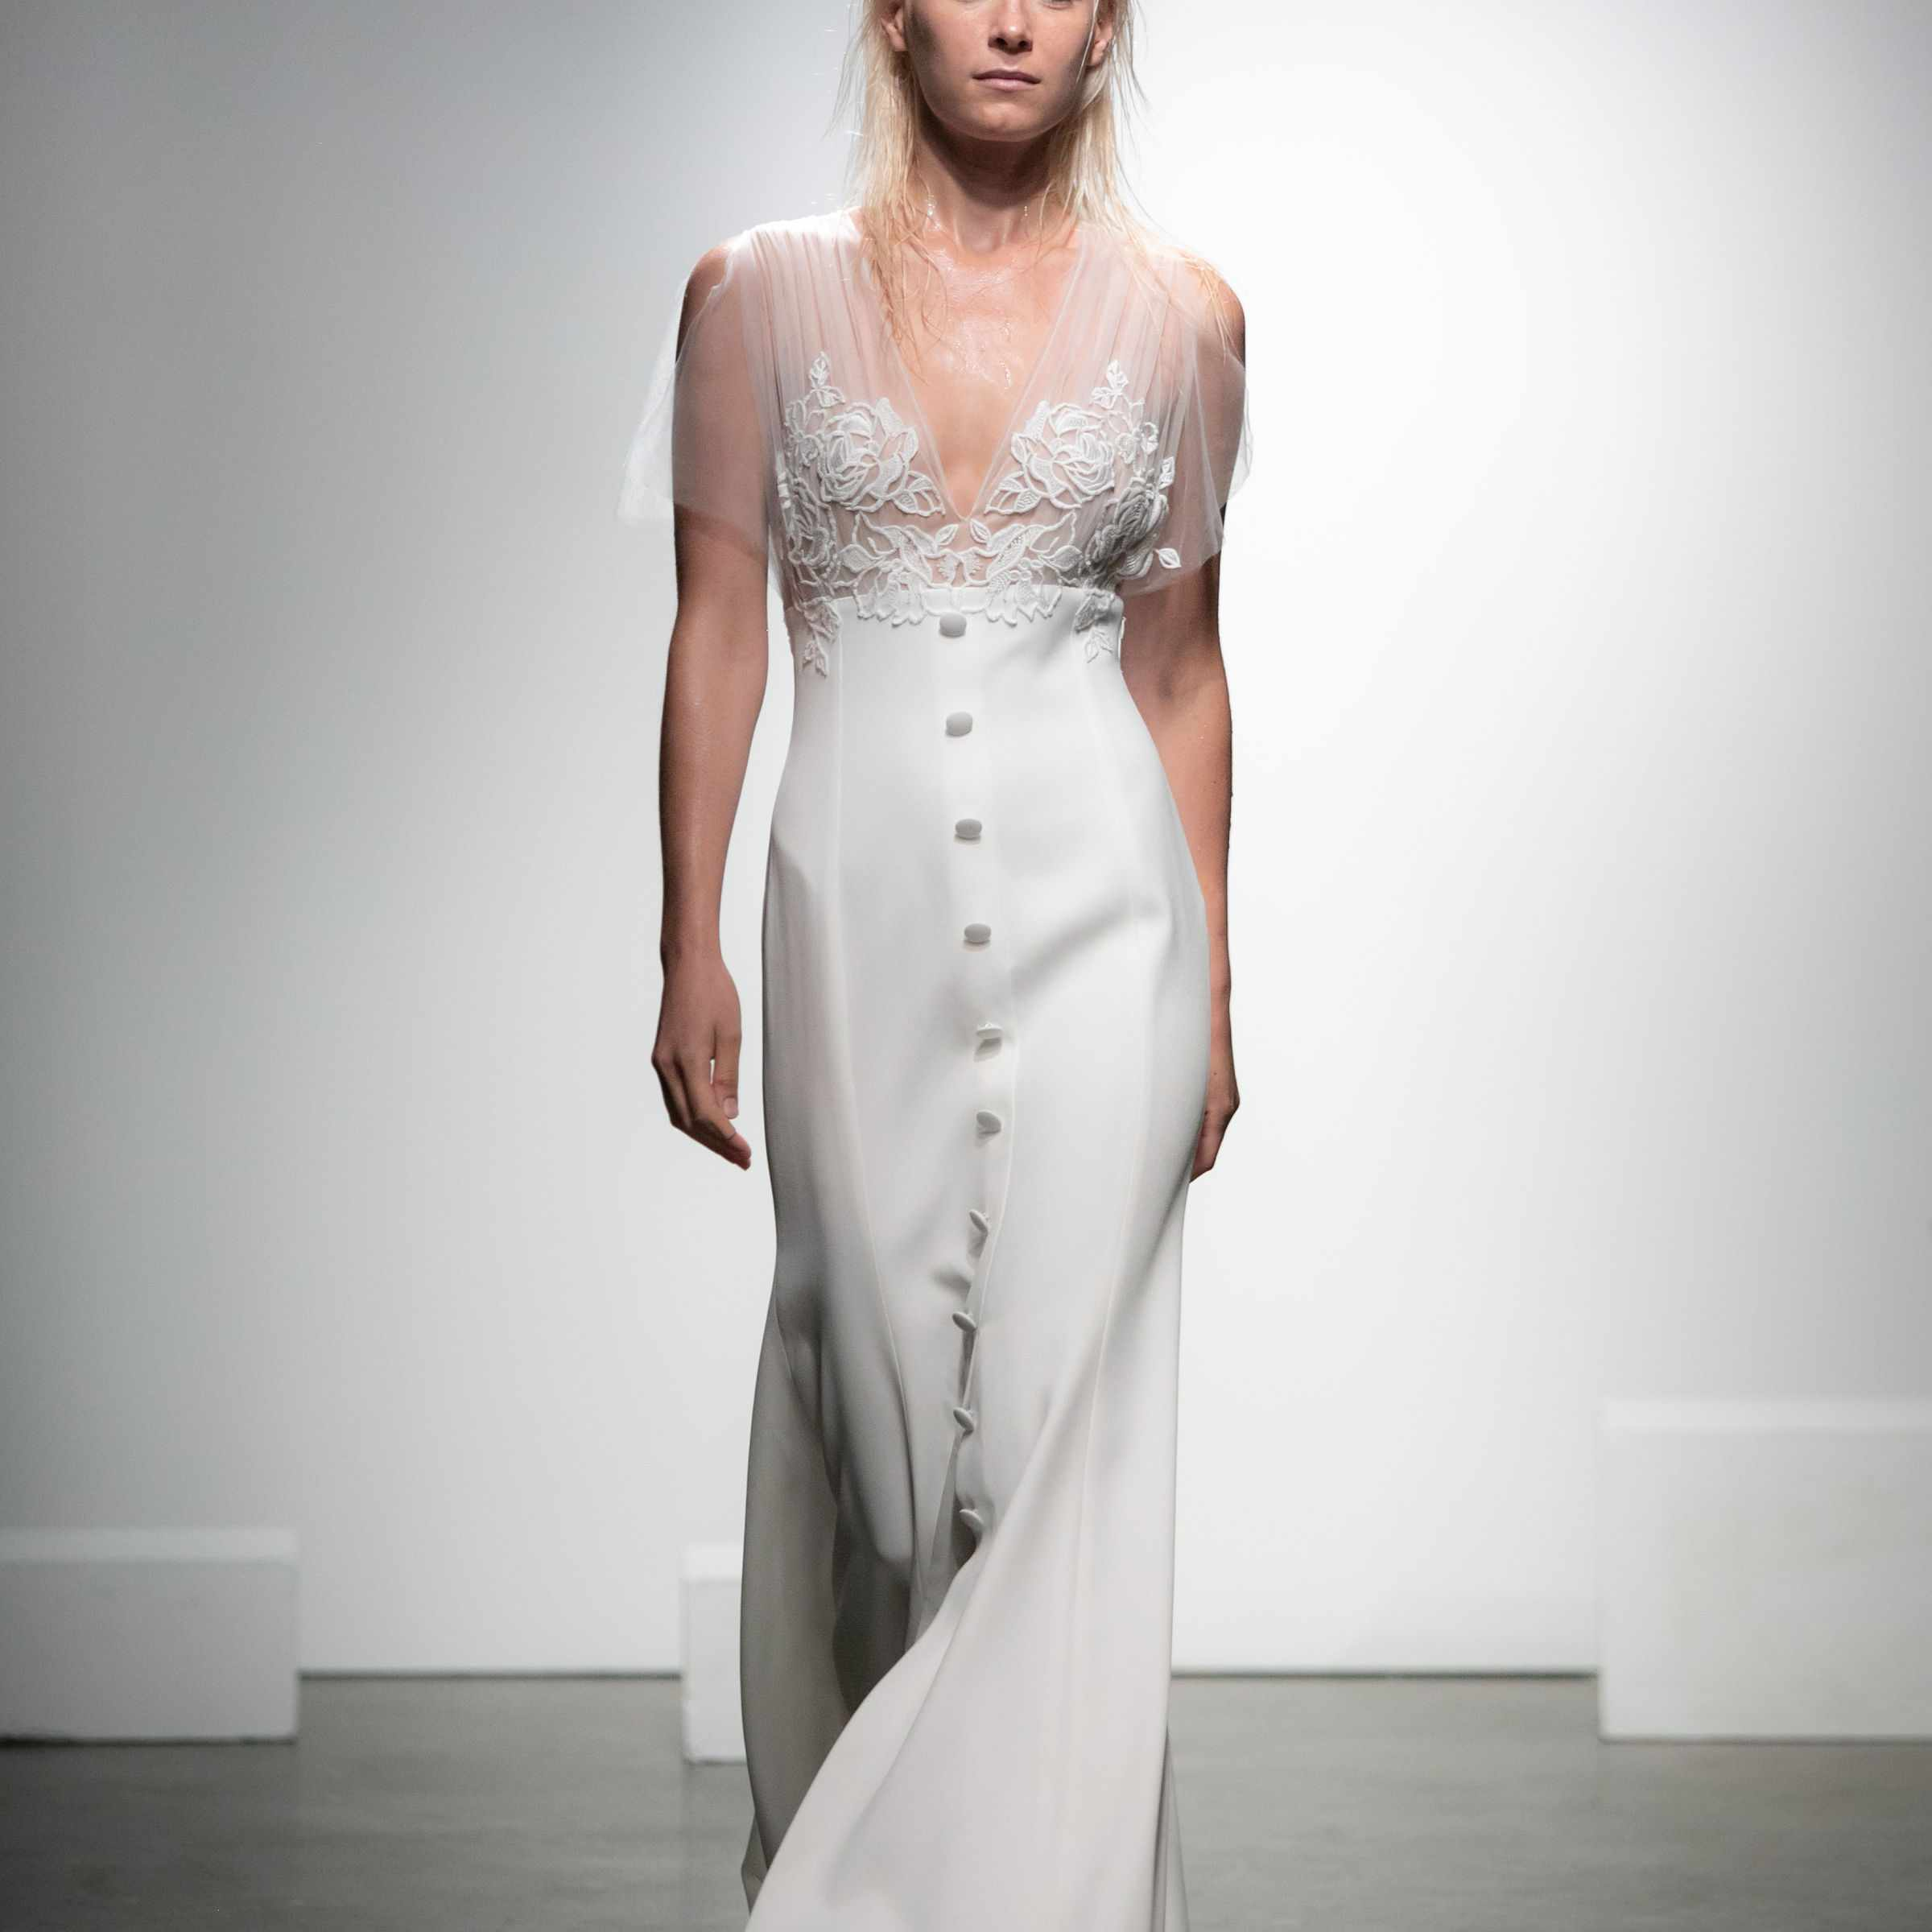 Model in button-down crepe dress with embroidered tulle